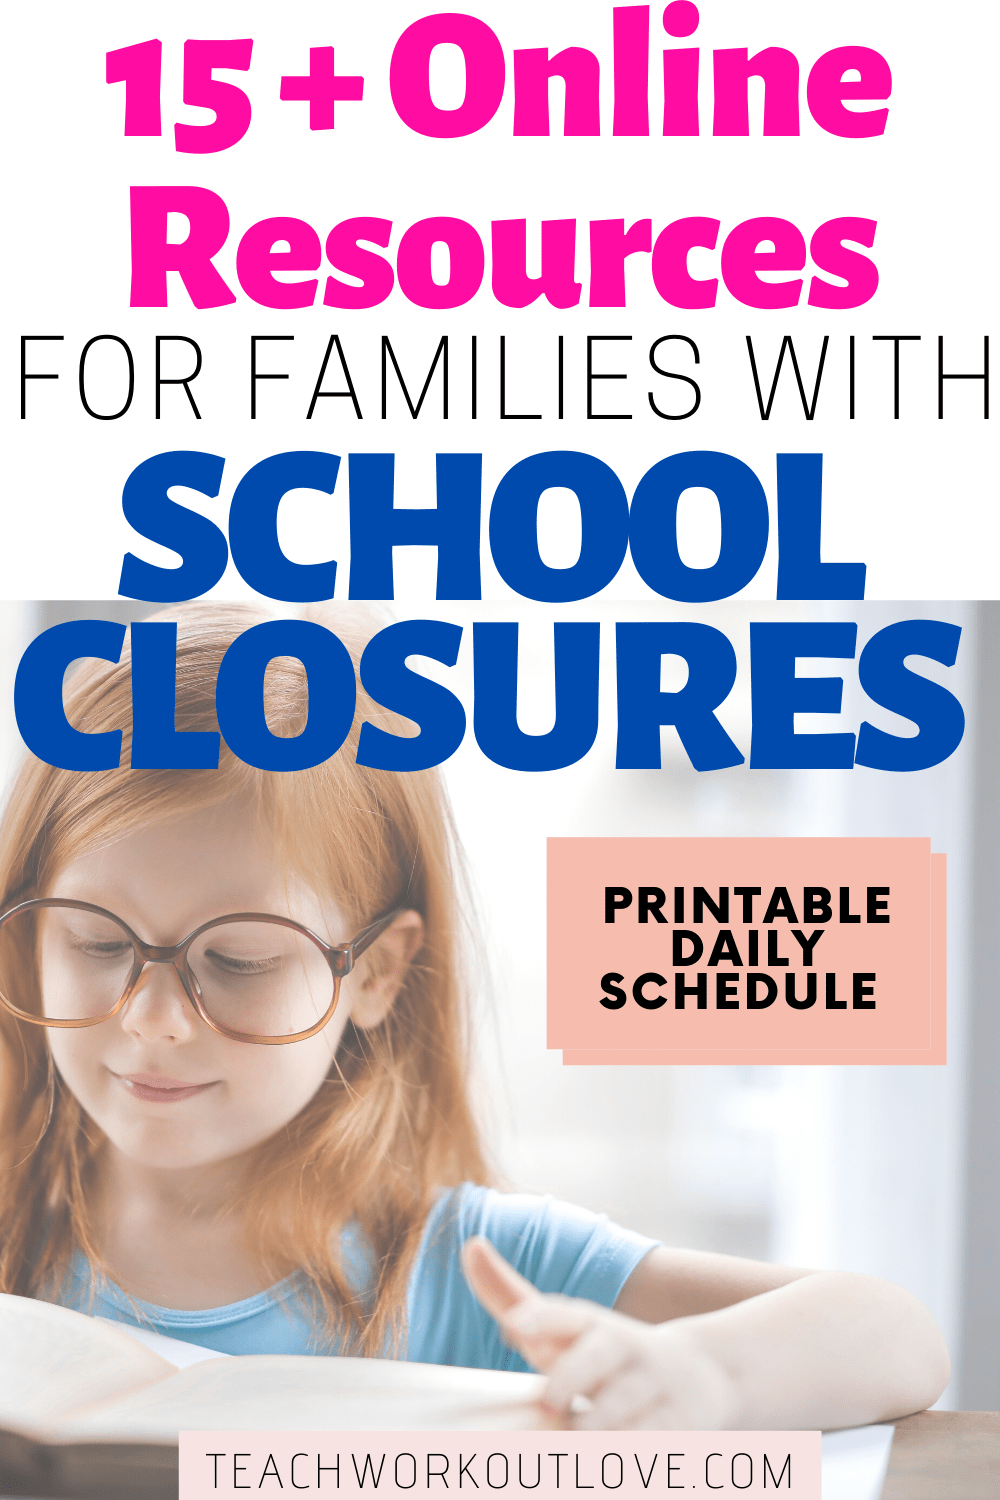 Is your kid's school closed? We created lists of activities & resources for families dealing with school closures + printable daily schedule.